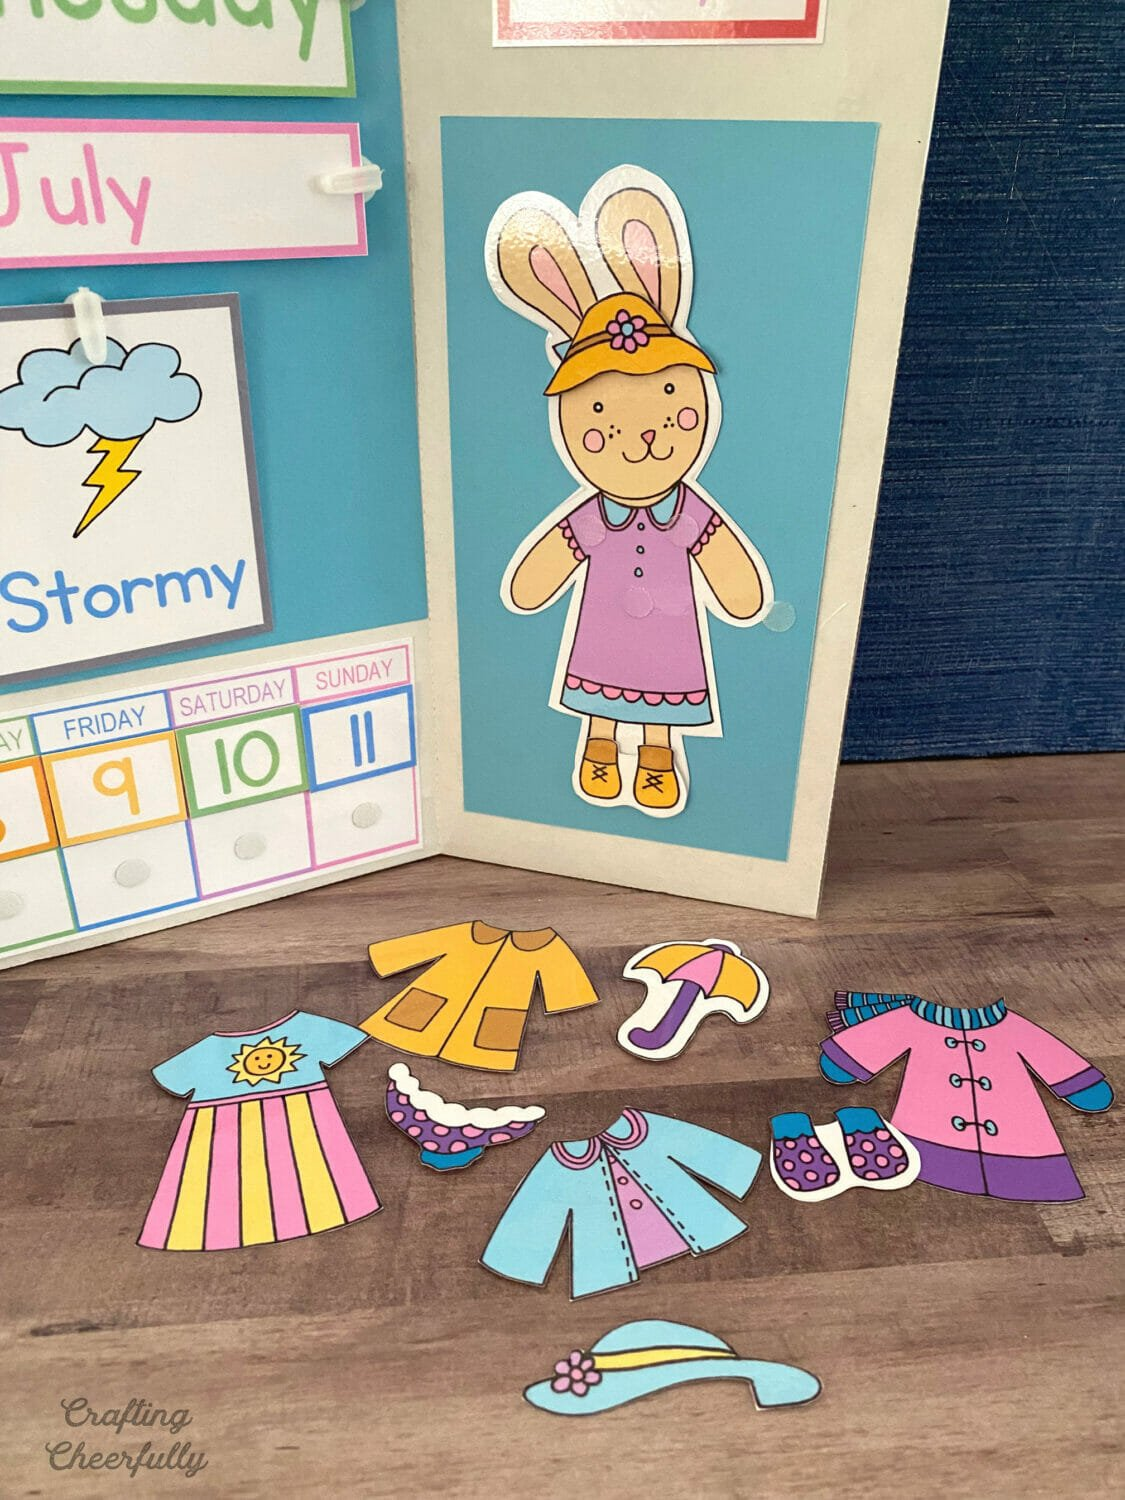 Weather bunny on a weather calendar trifold board.